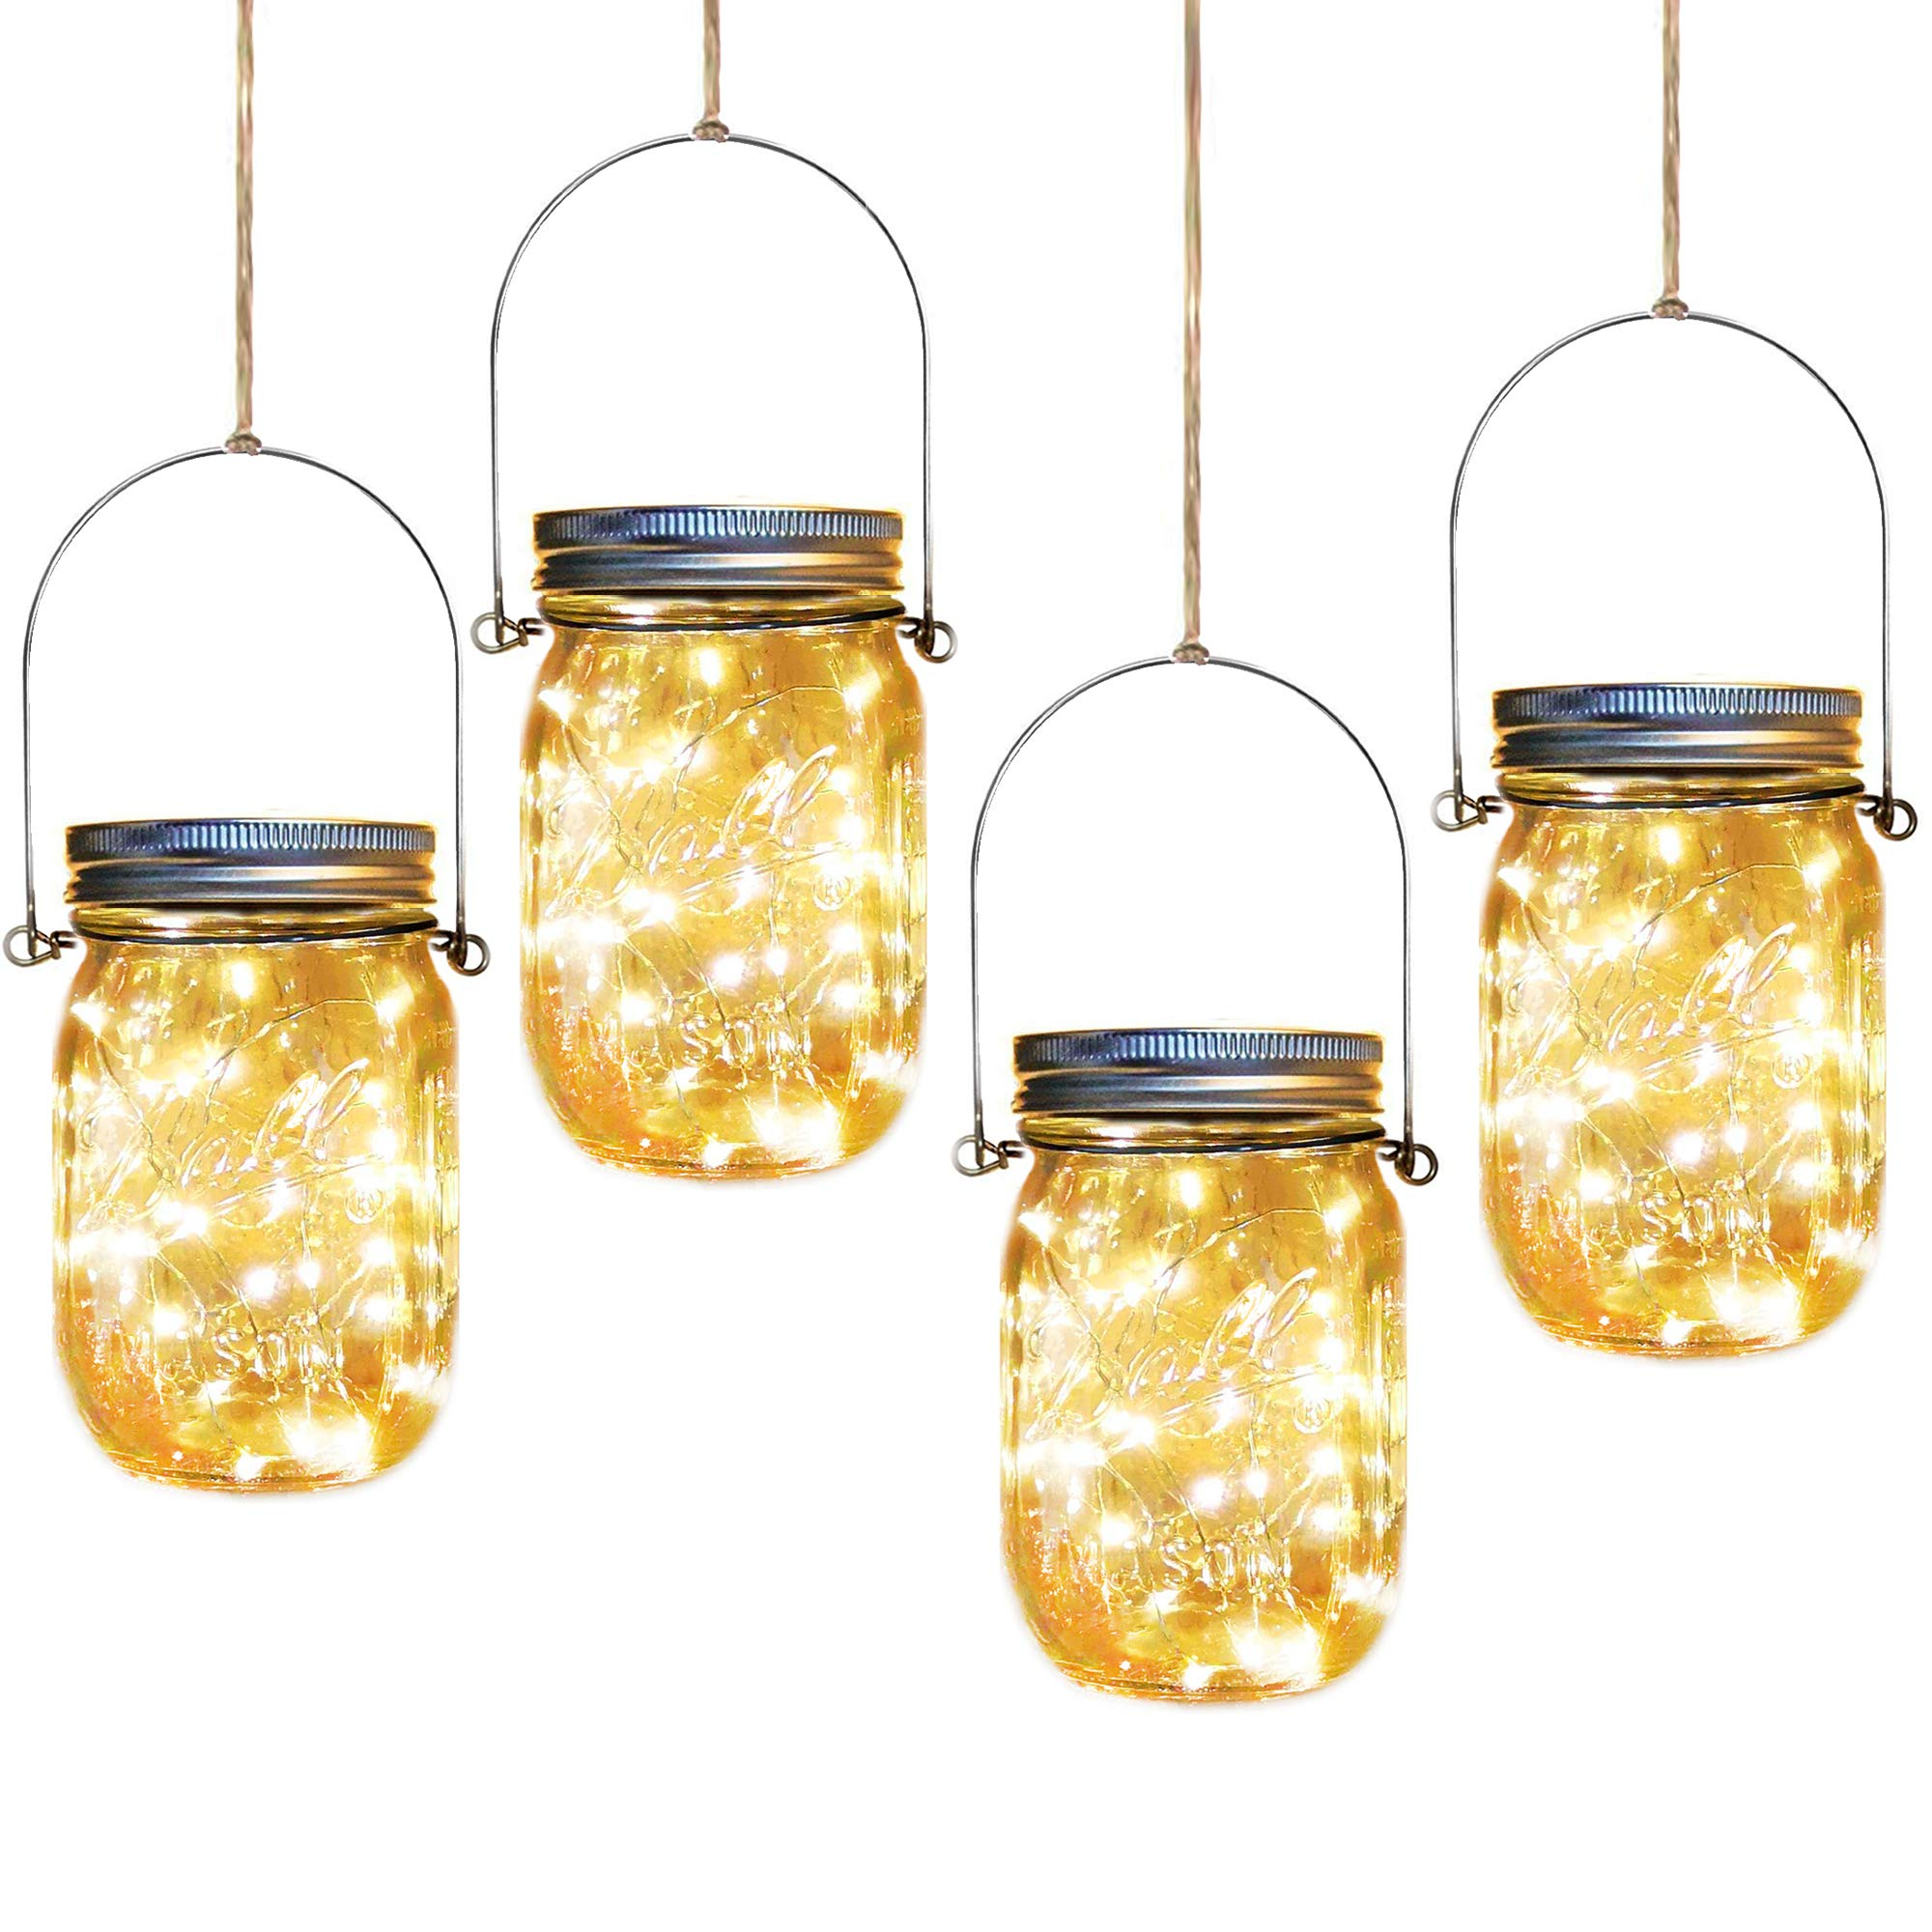 Solar Mason Jar Lights,4 Pack 30 Led Starry Fairy String Hanging Jar Lights,Solar Lanterns for Outdoor Patio Party Garden Wedding Christmas Decor Lights(Mason Jars/Handles Included)